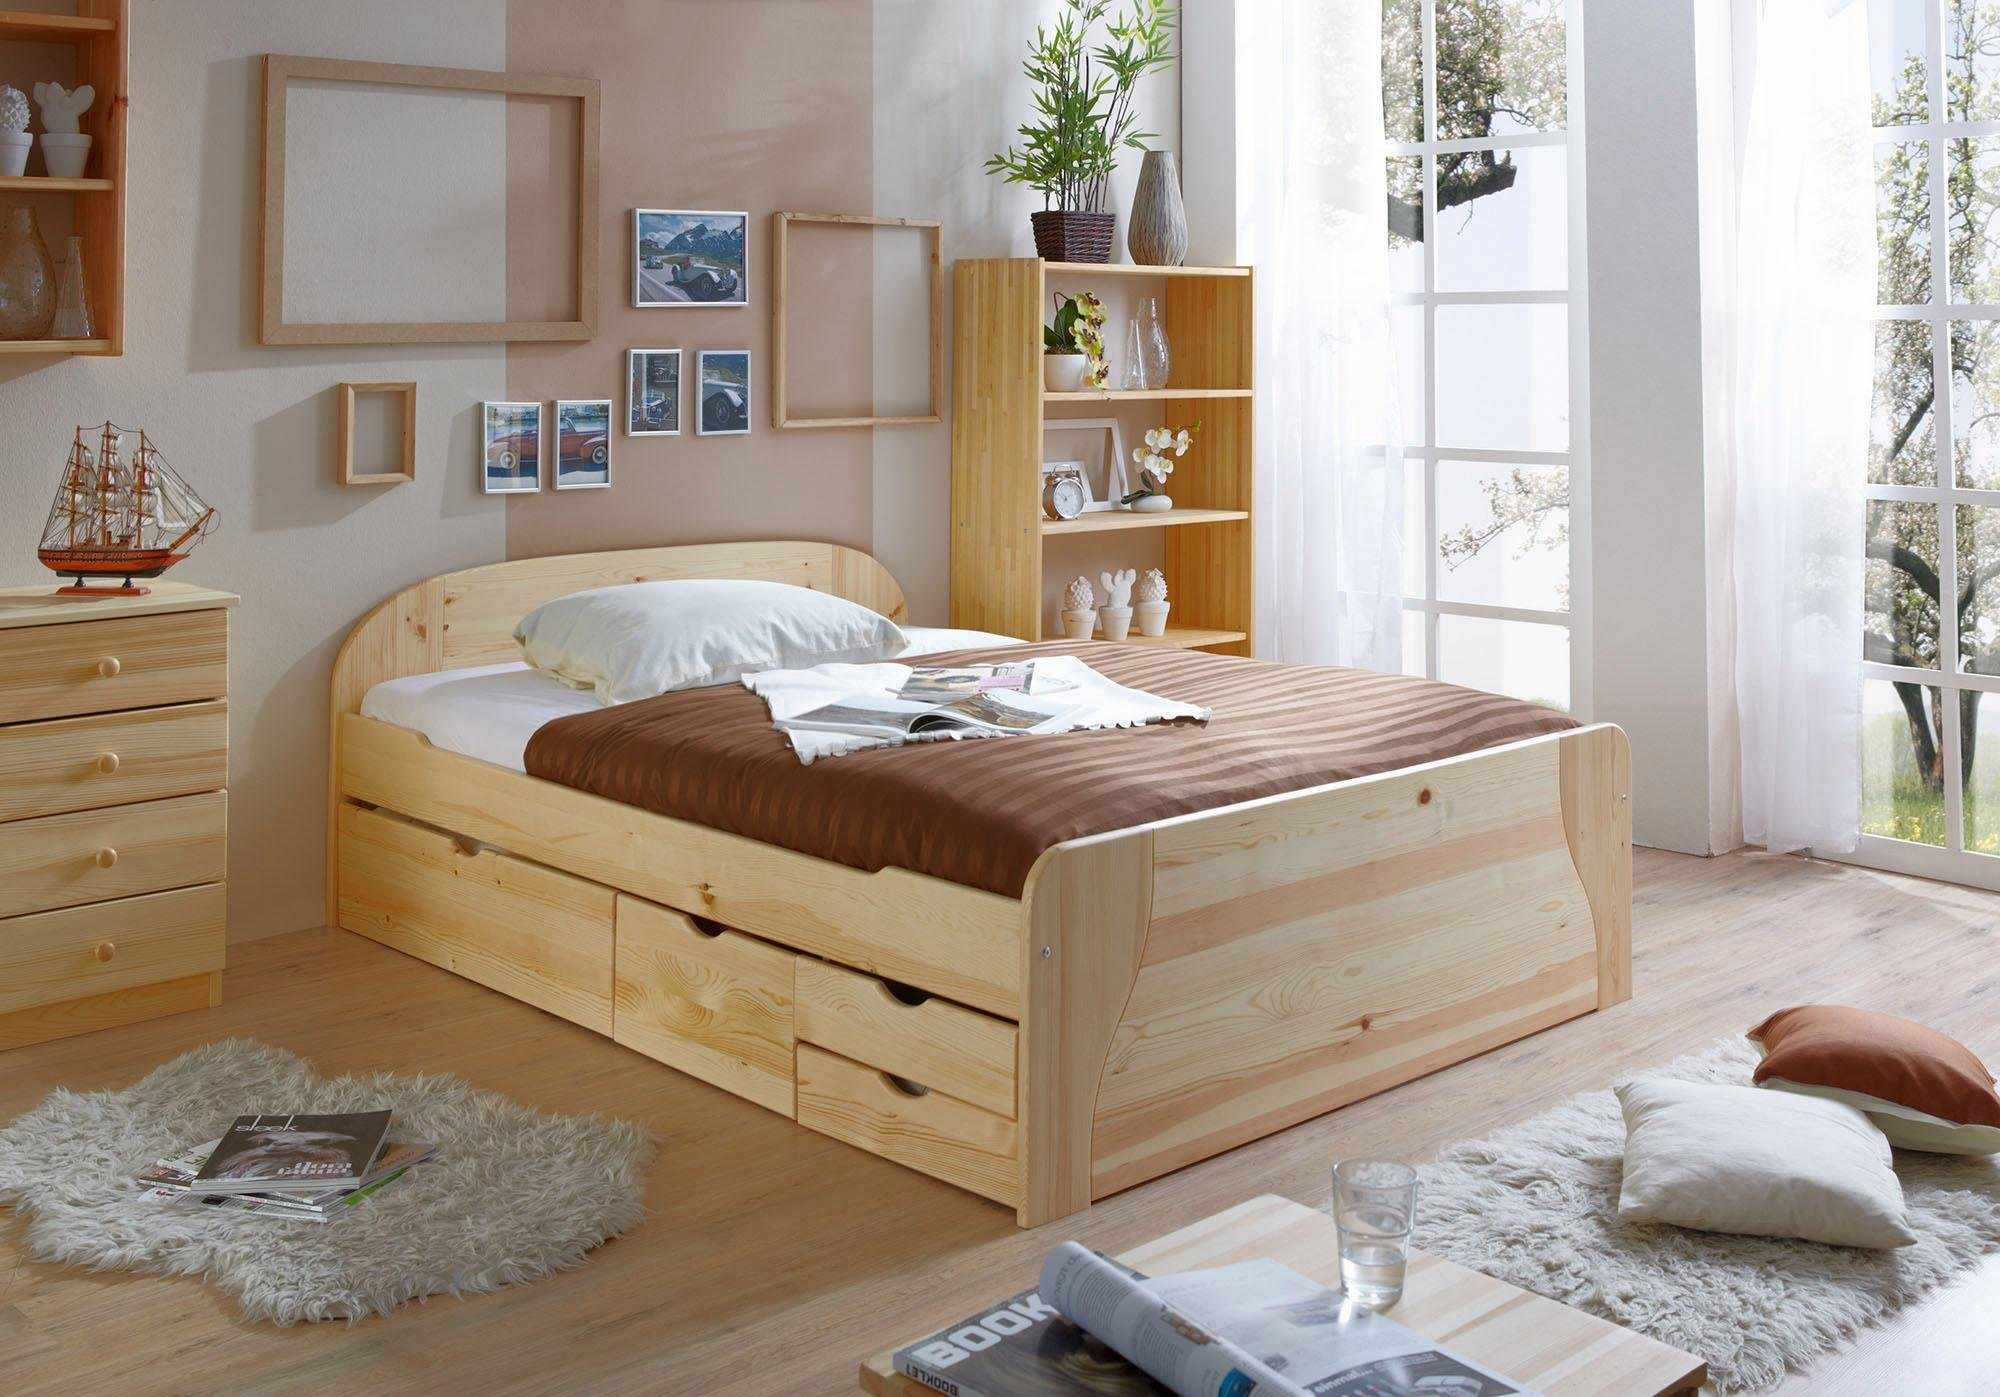 ticaa bett erna in 3 breiten mit bettschubk sten kiefer natur liegefl che 140x200 cm online. Black Bedroom Furniture Sets. Home Design Ideas